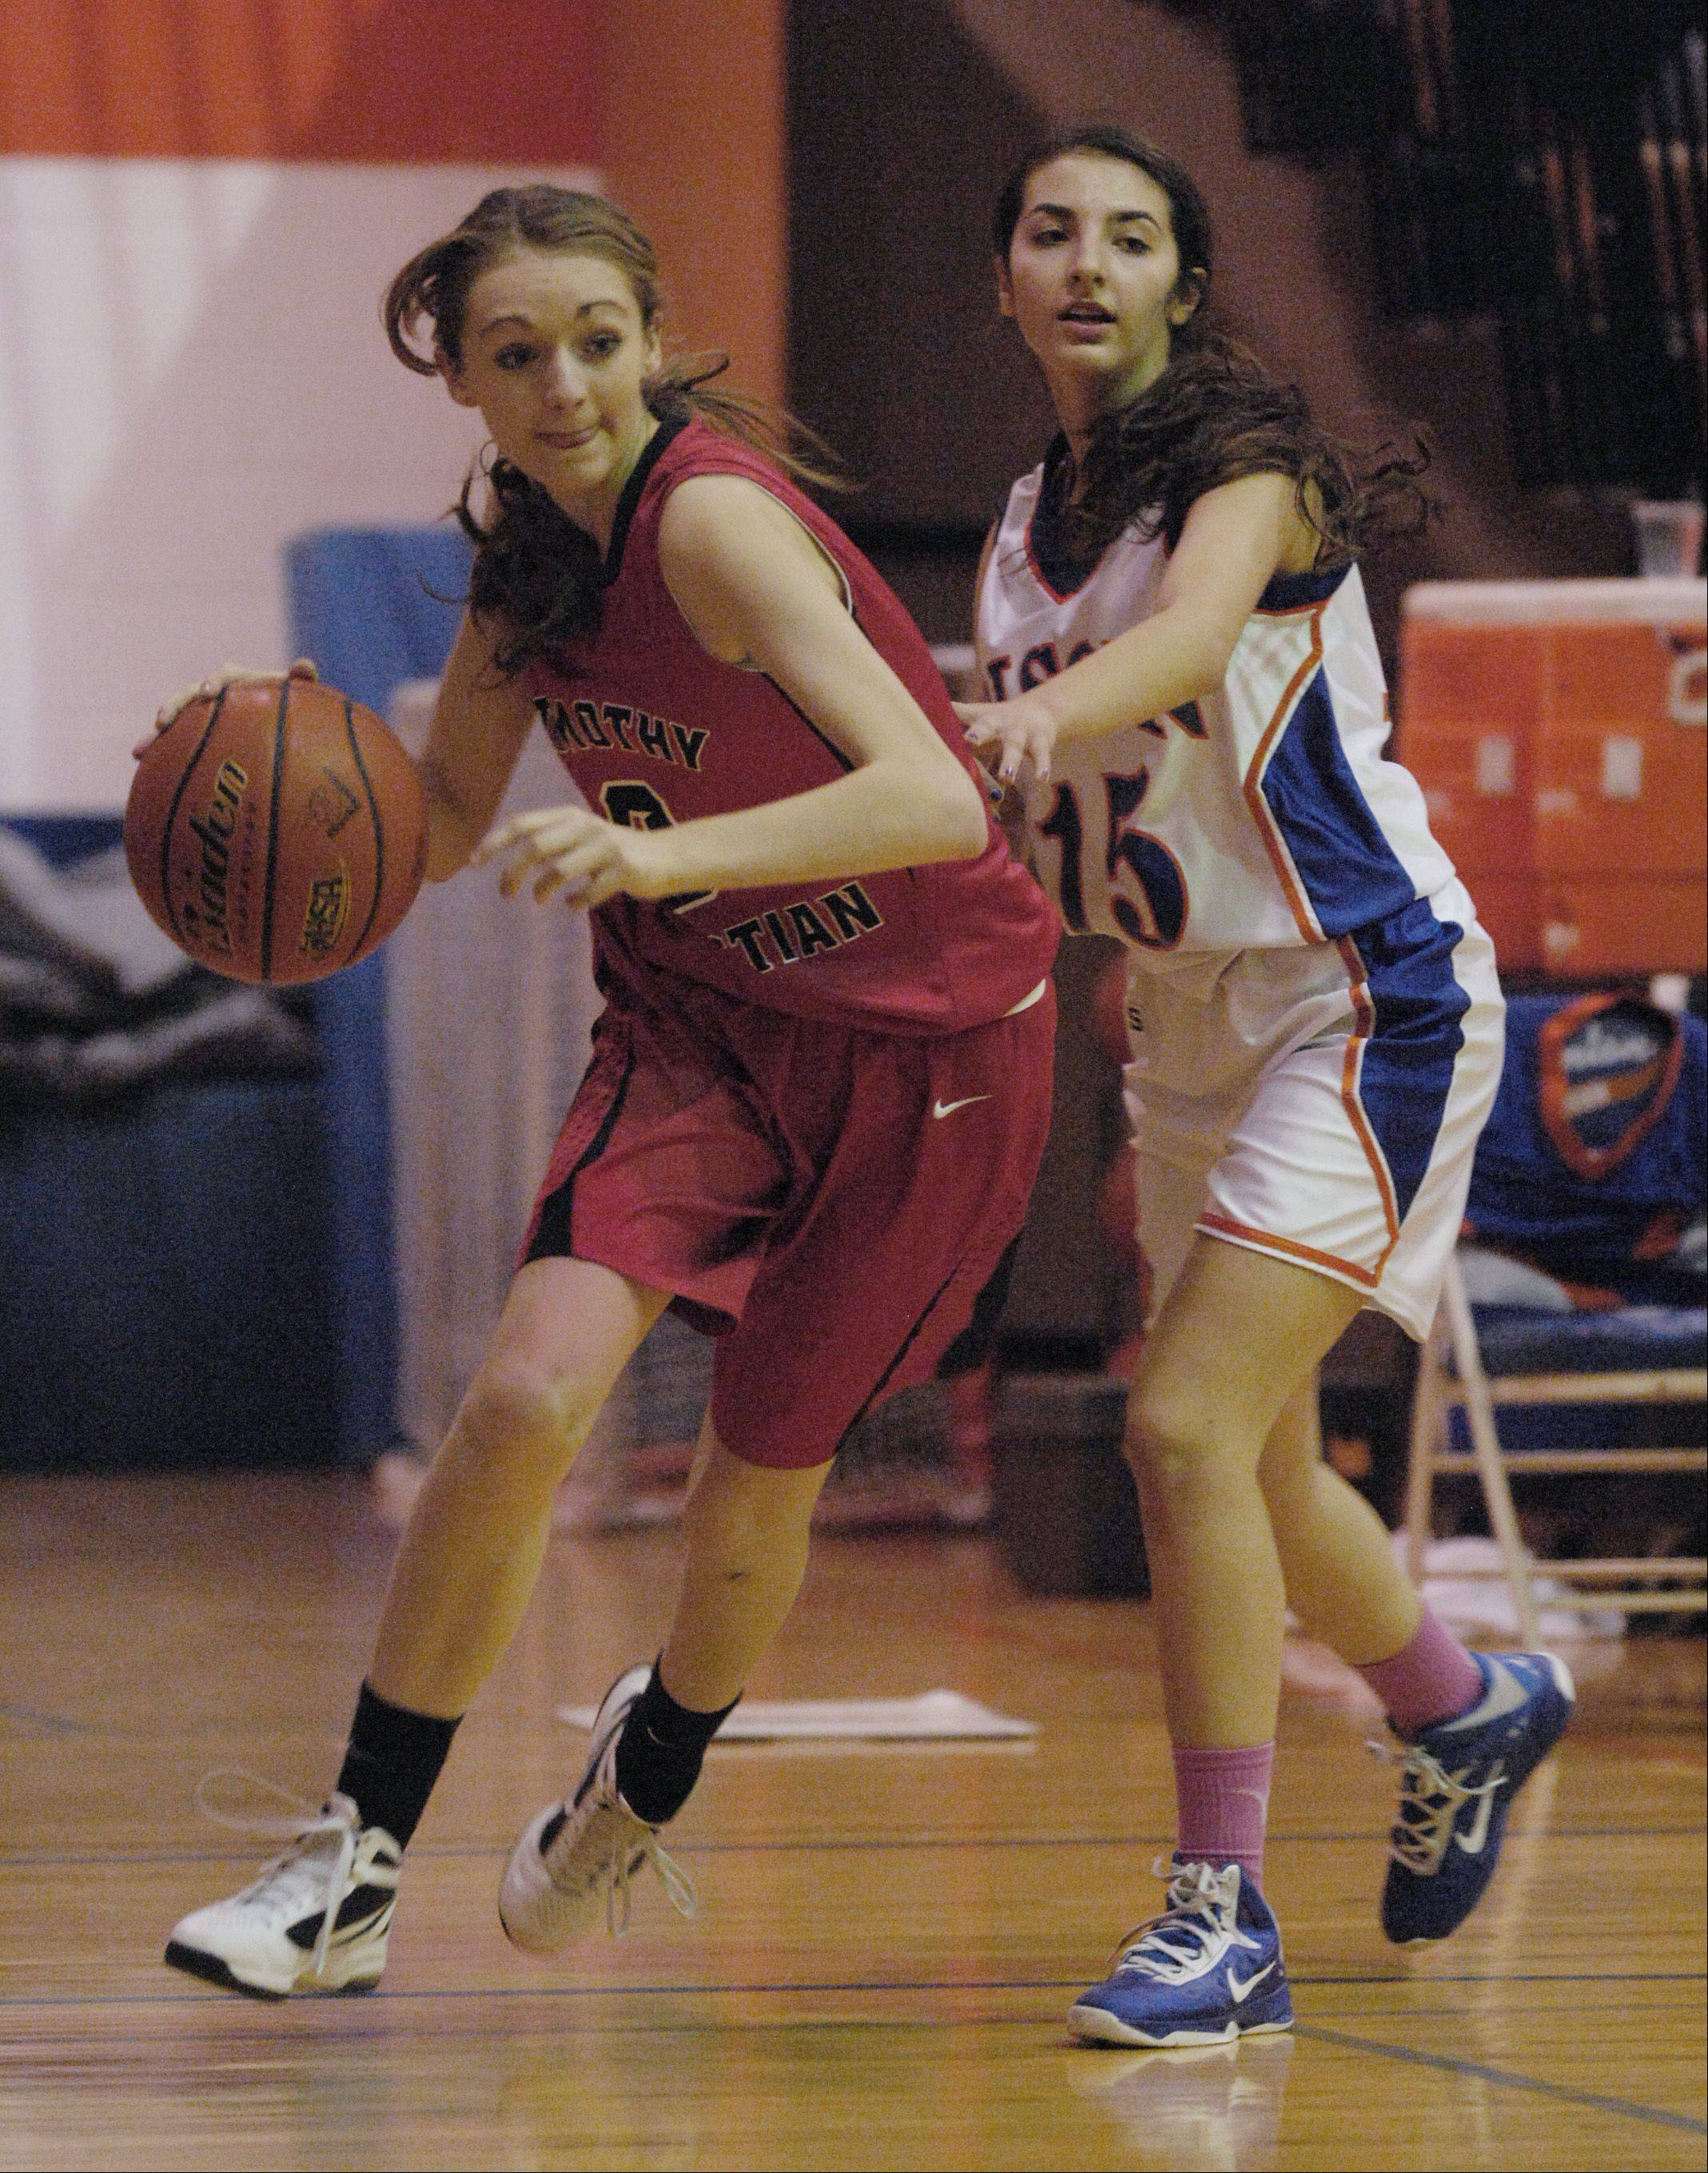 Brittany Scheidt of Timothy Christian drives past Tina Guarino of Fenton High School.